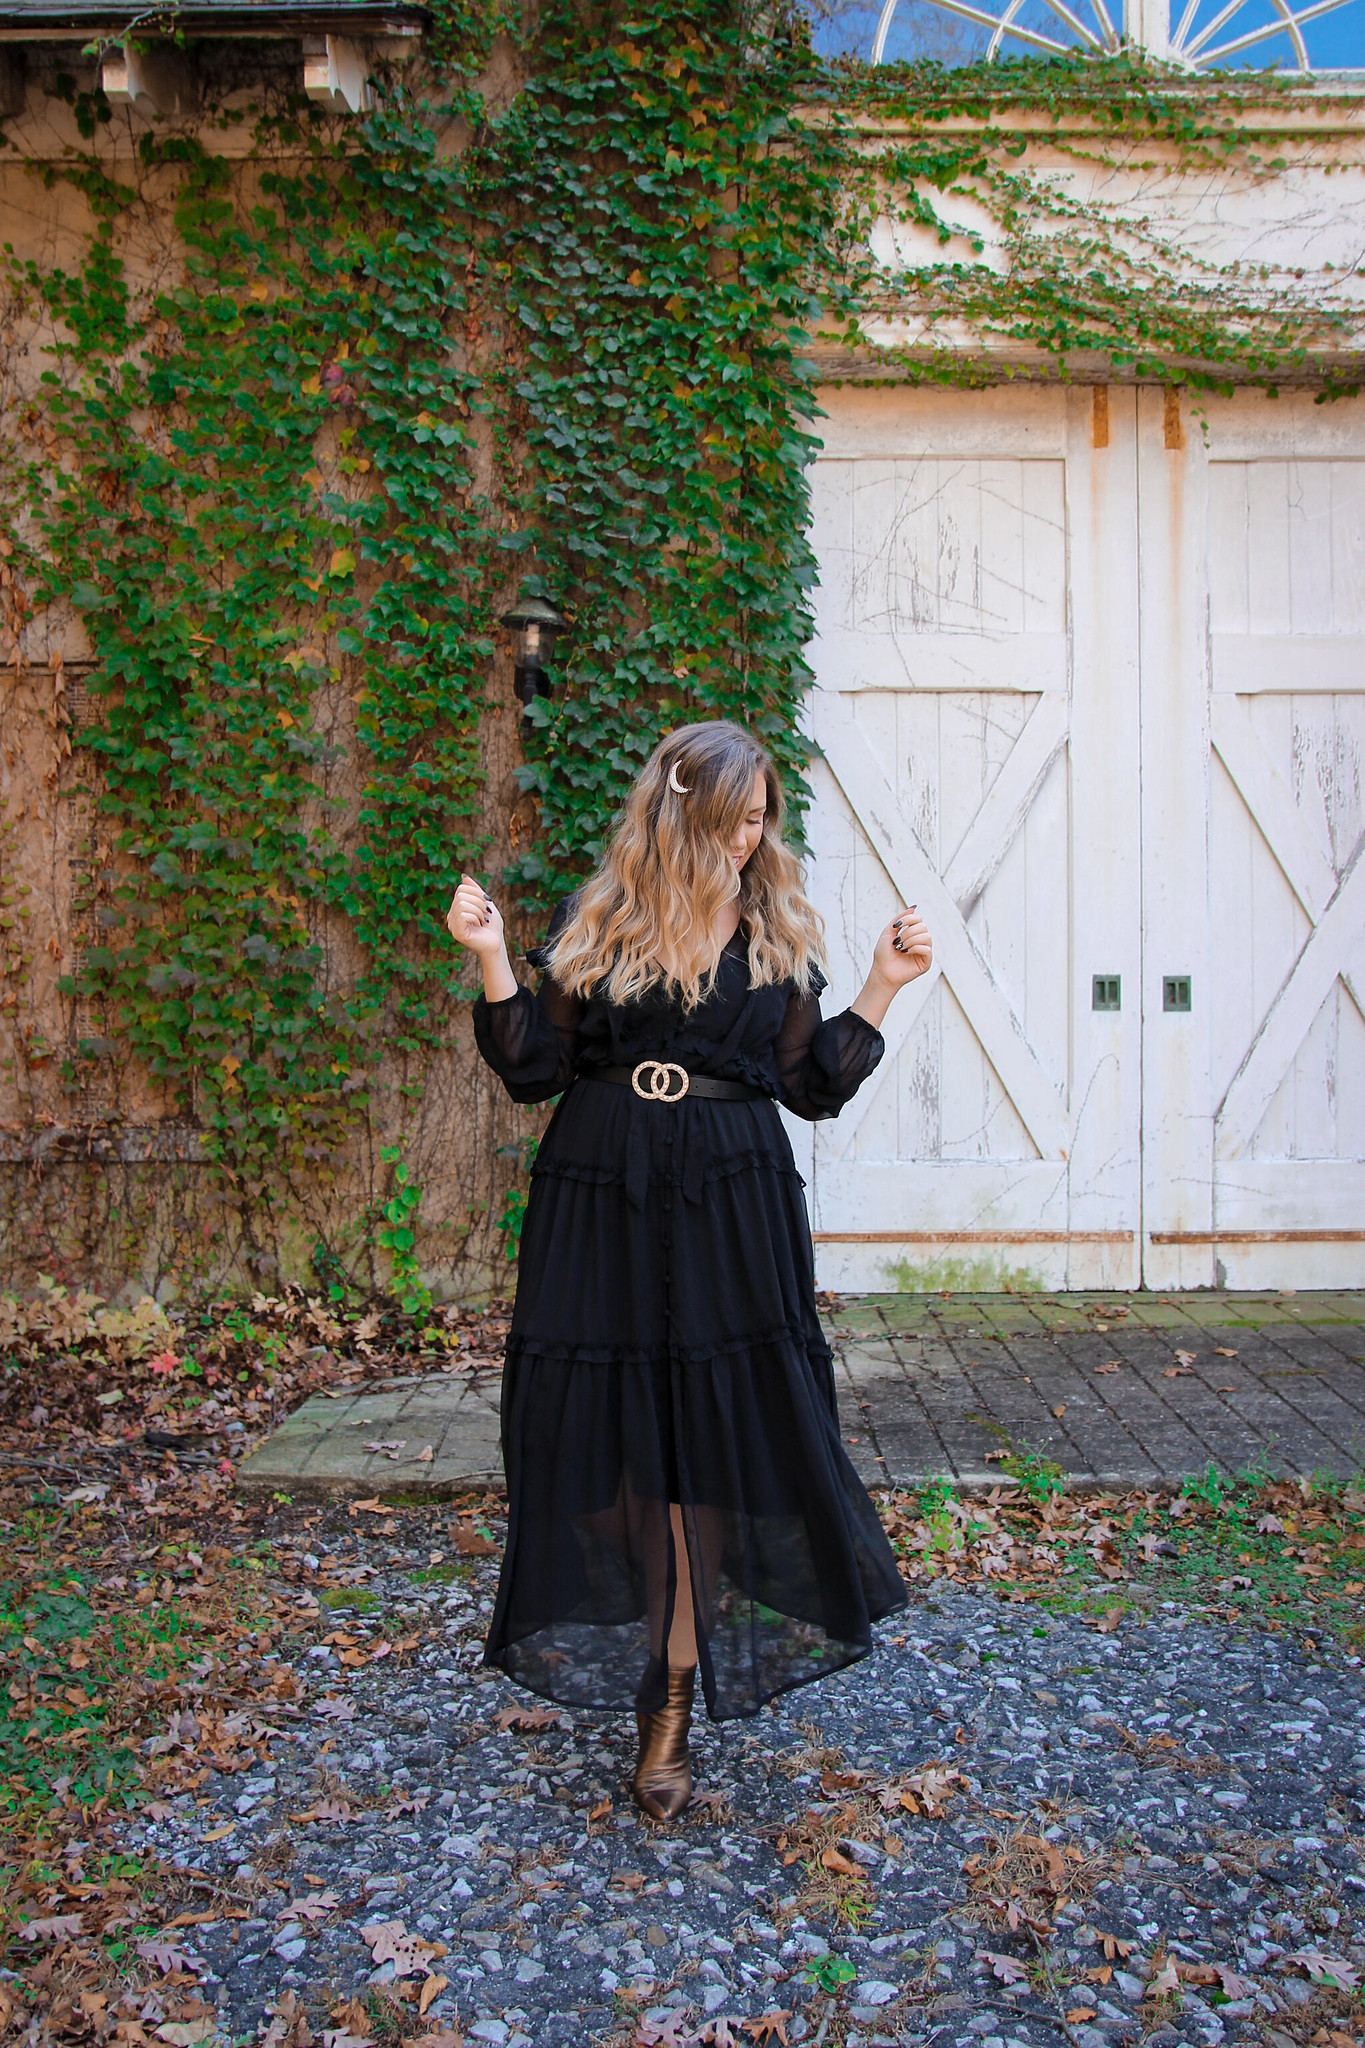 Long Black Sheer Dress Fall Photoshoot in New York | Long Blonde Wavy Hair Moon Hair Pin | Fall Foliage | Westchester County NY Merestead